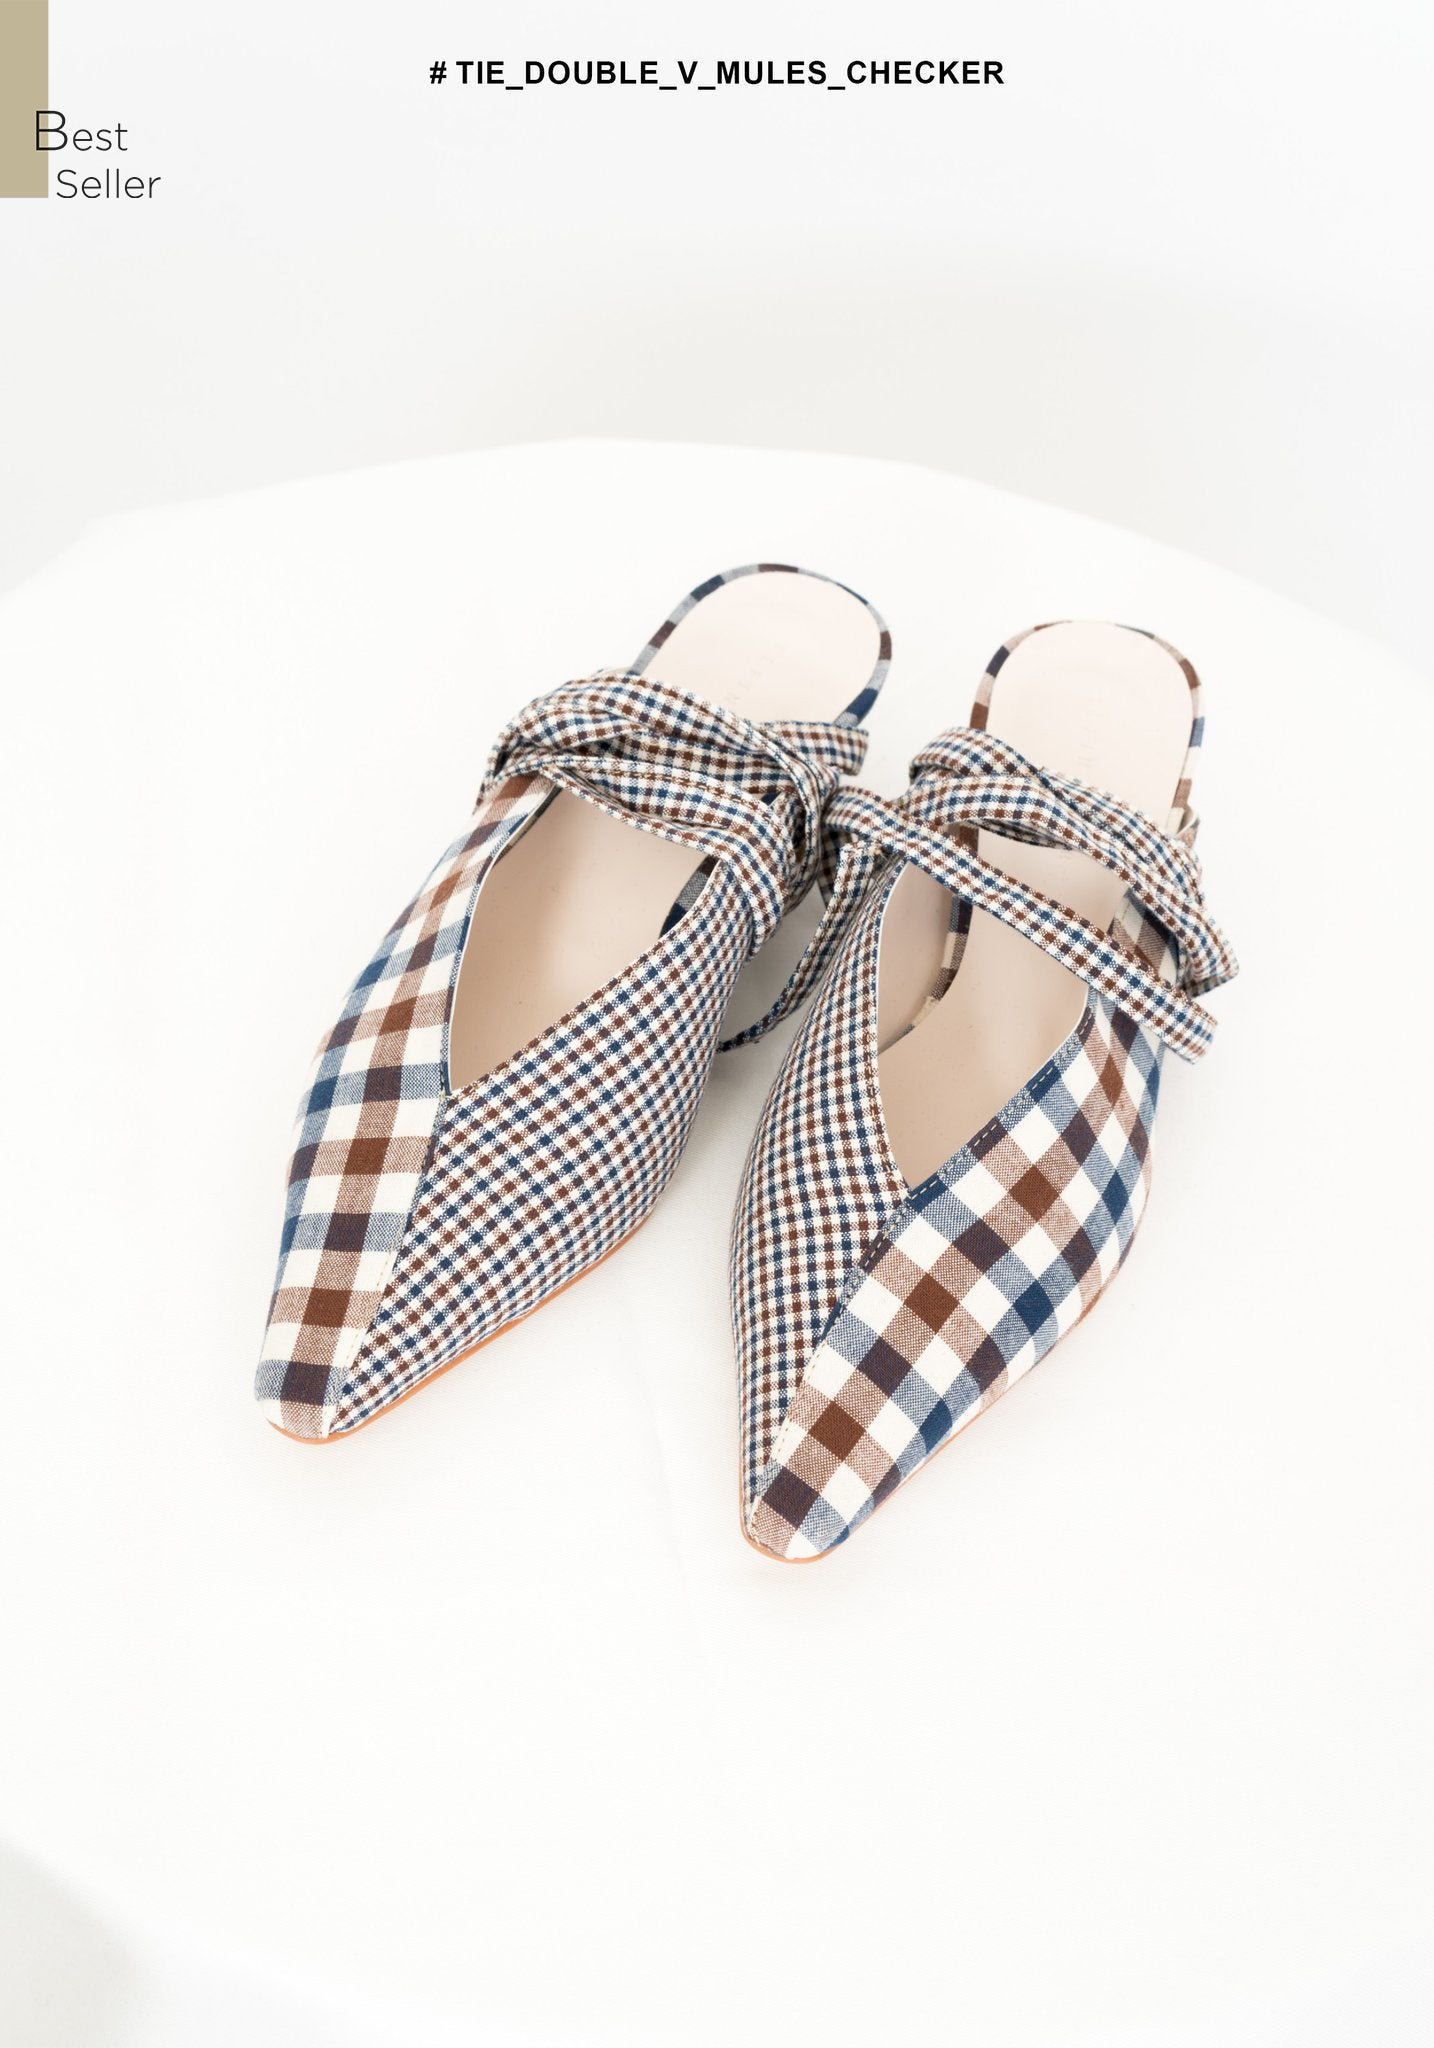 Tie Double V Mules Checker - whoami